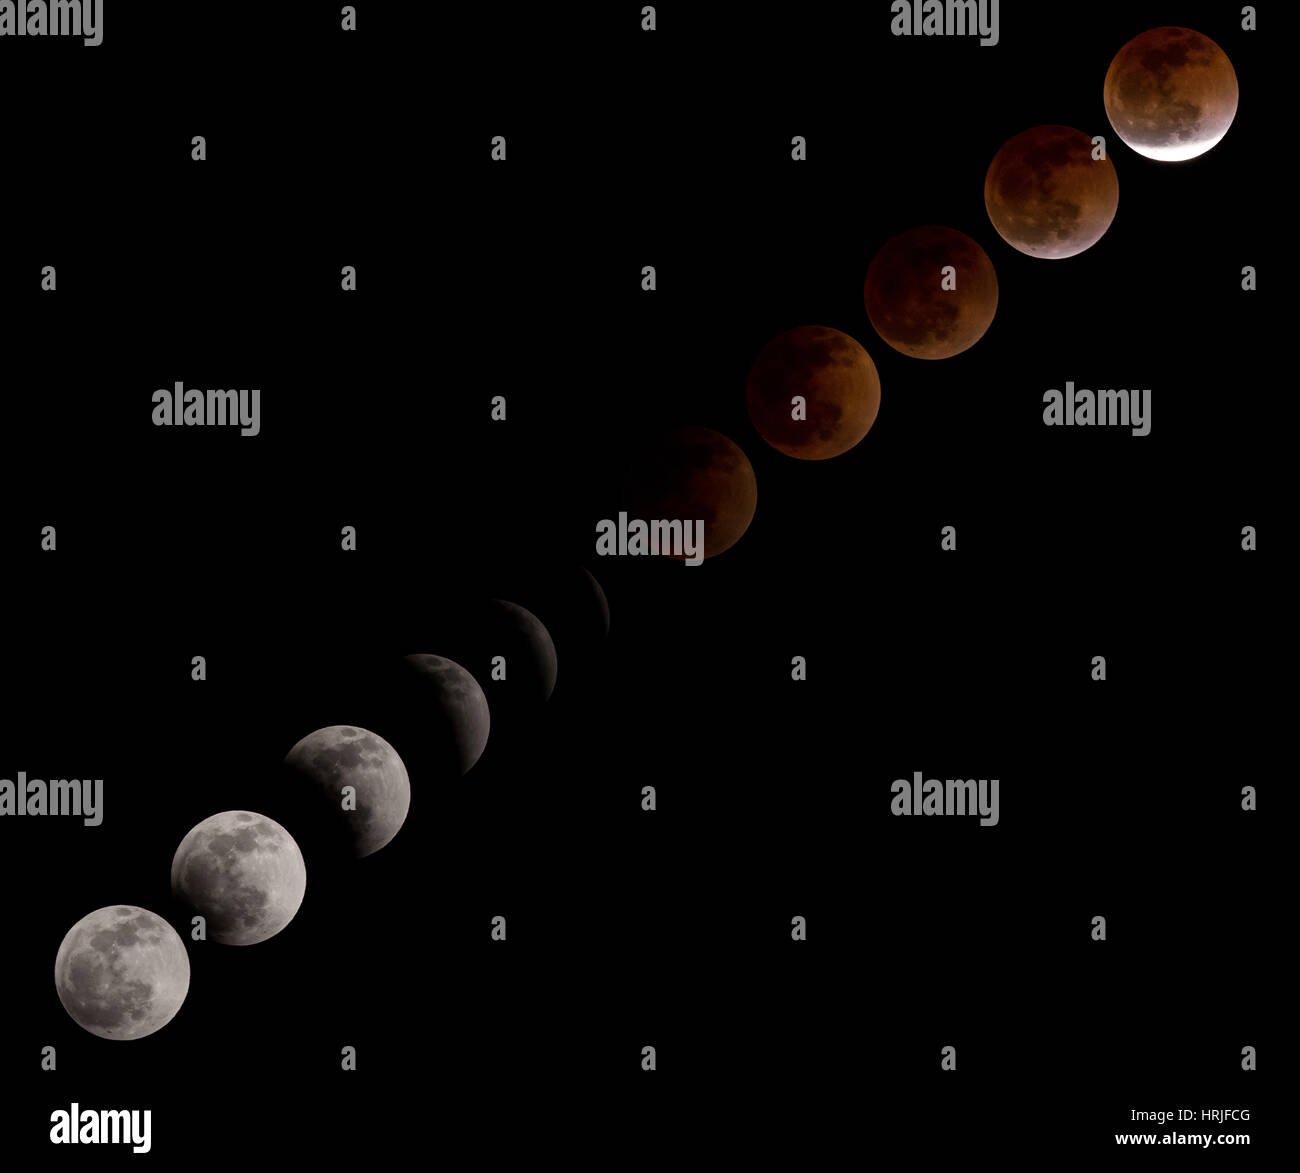 Lunar Eclipse 2014 - Stock Image